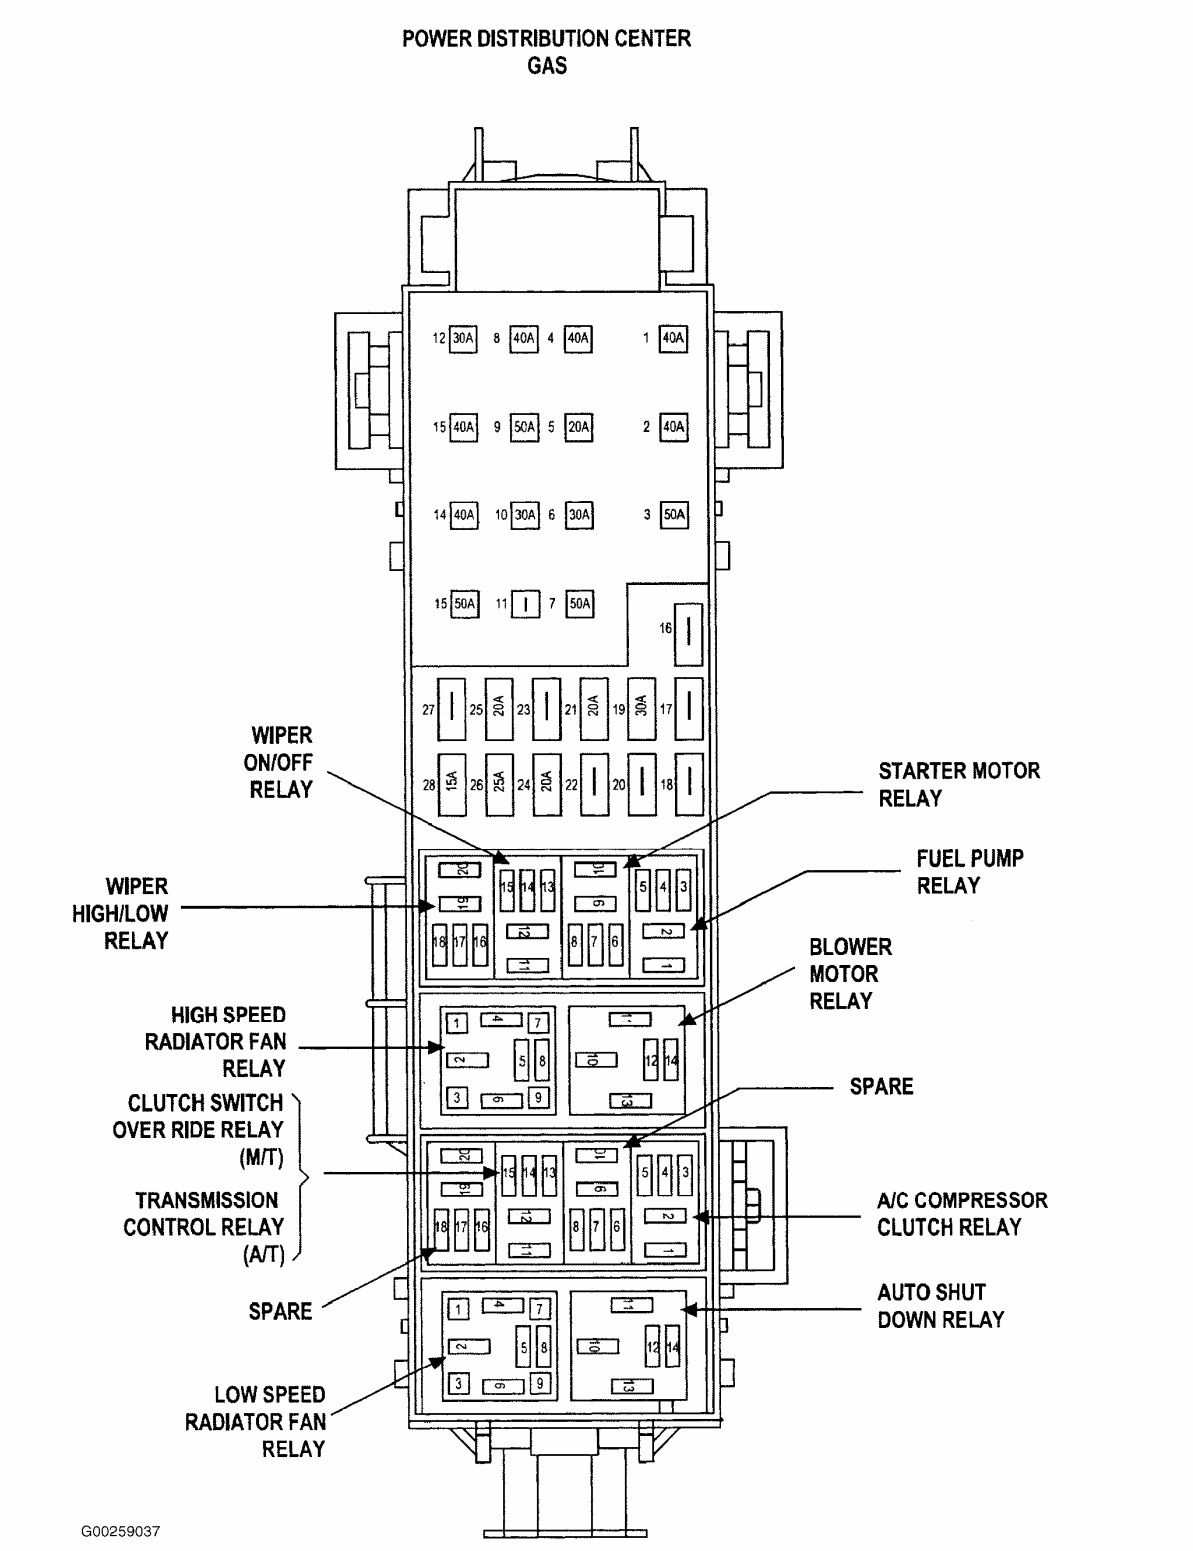 Wiring Diagram: 30 2004 Jeep Wrangler Fuse Box Diagram